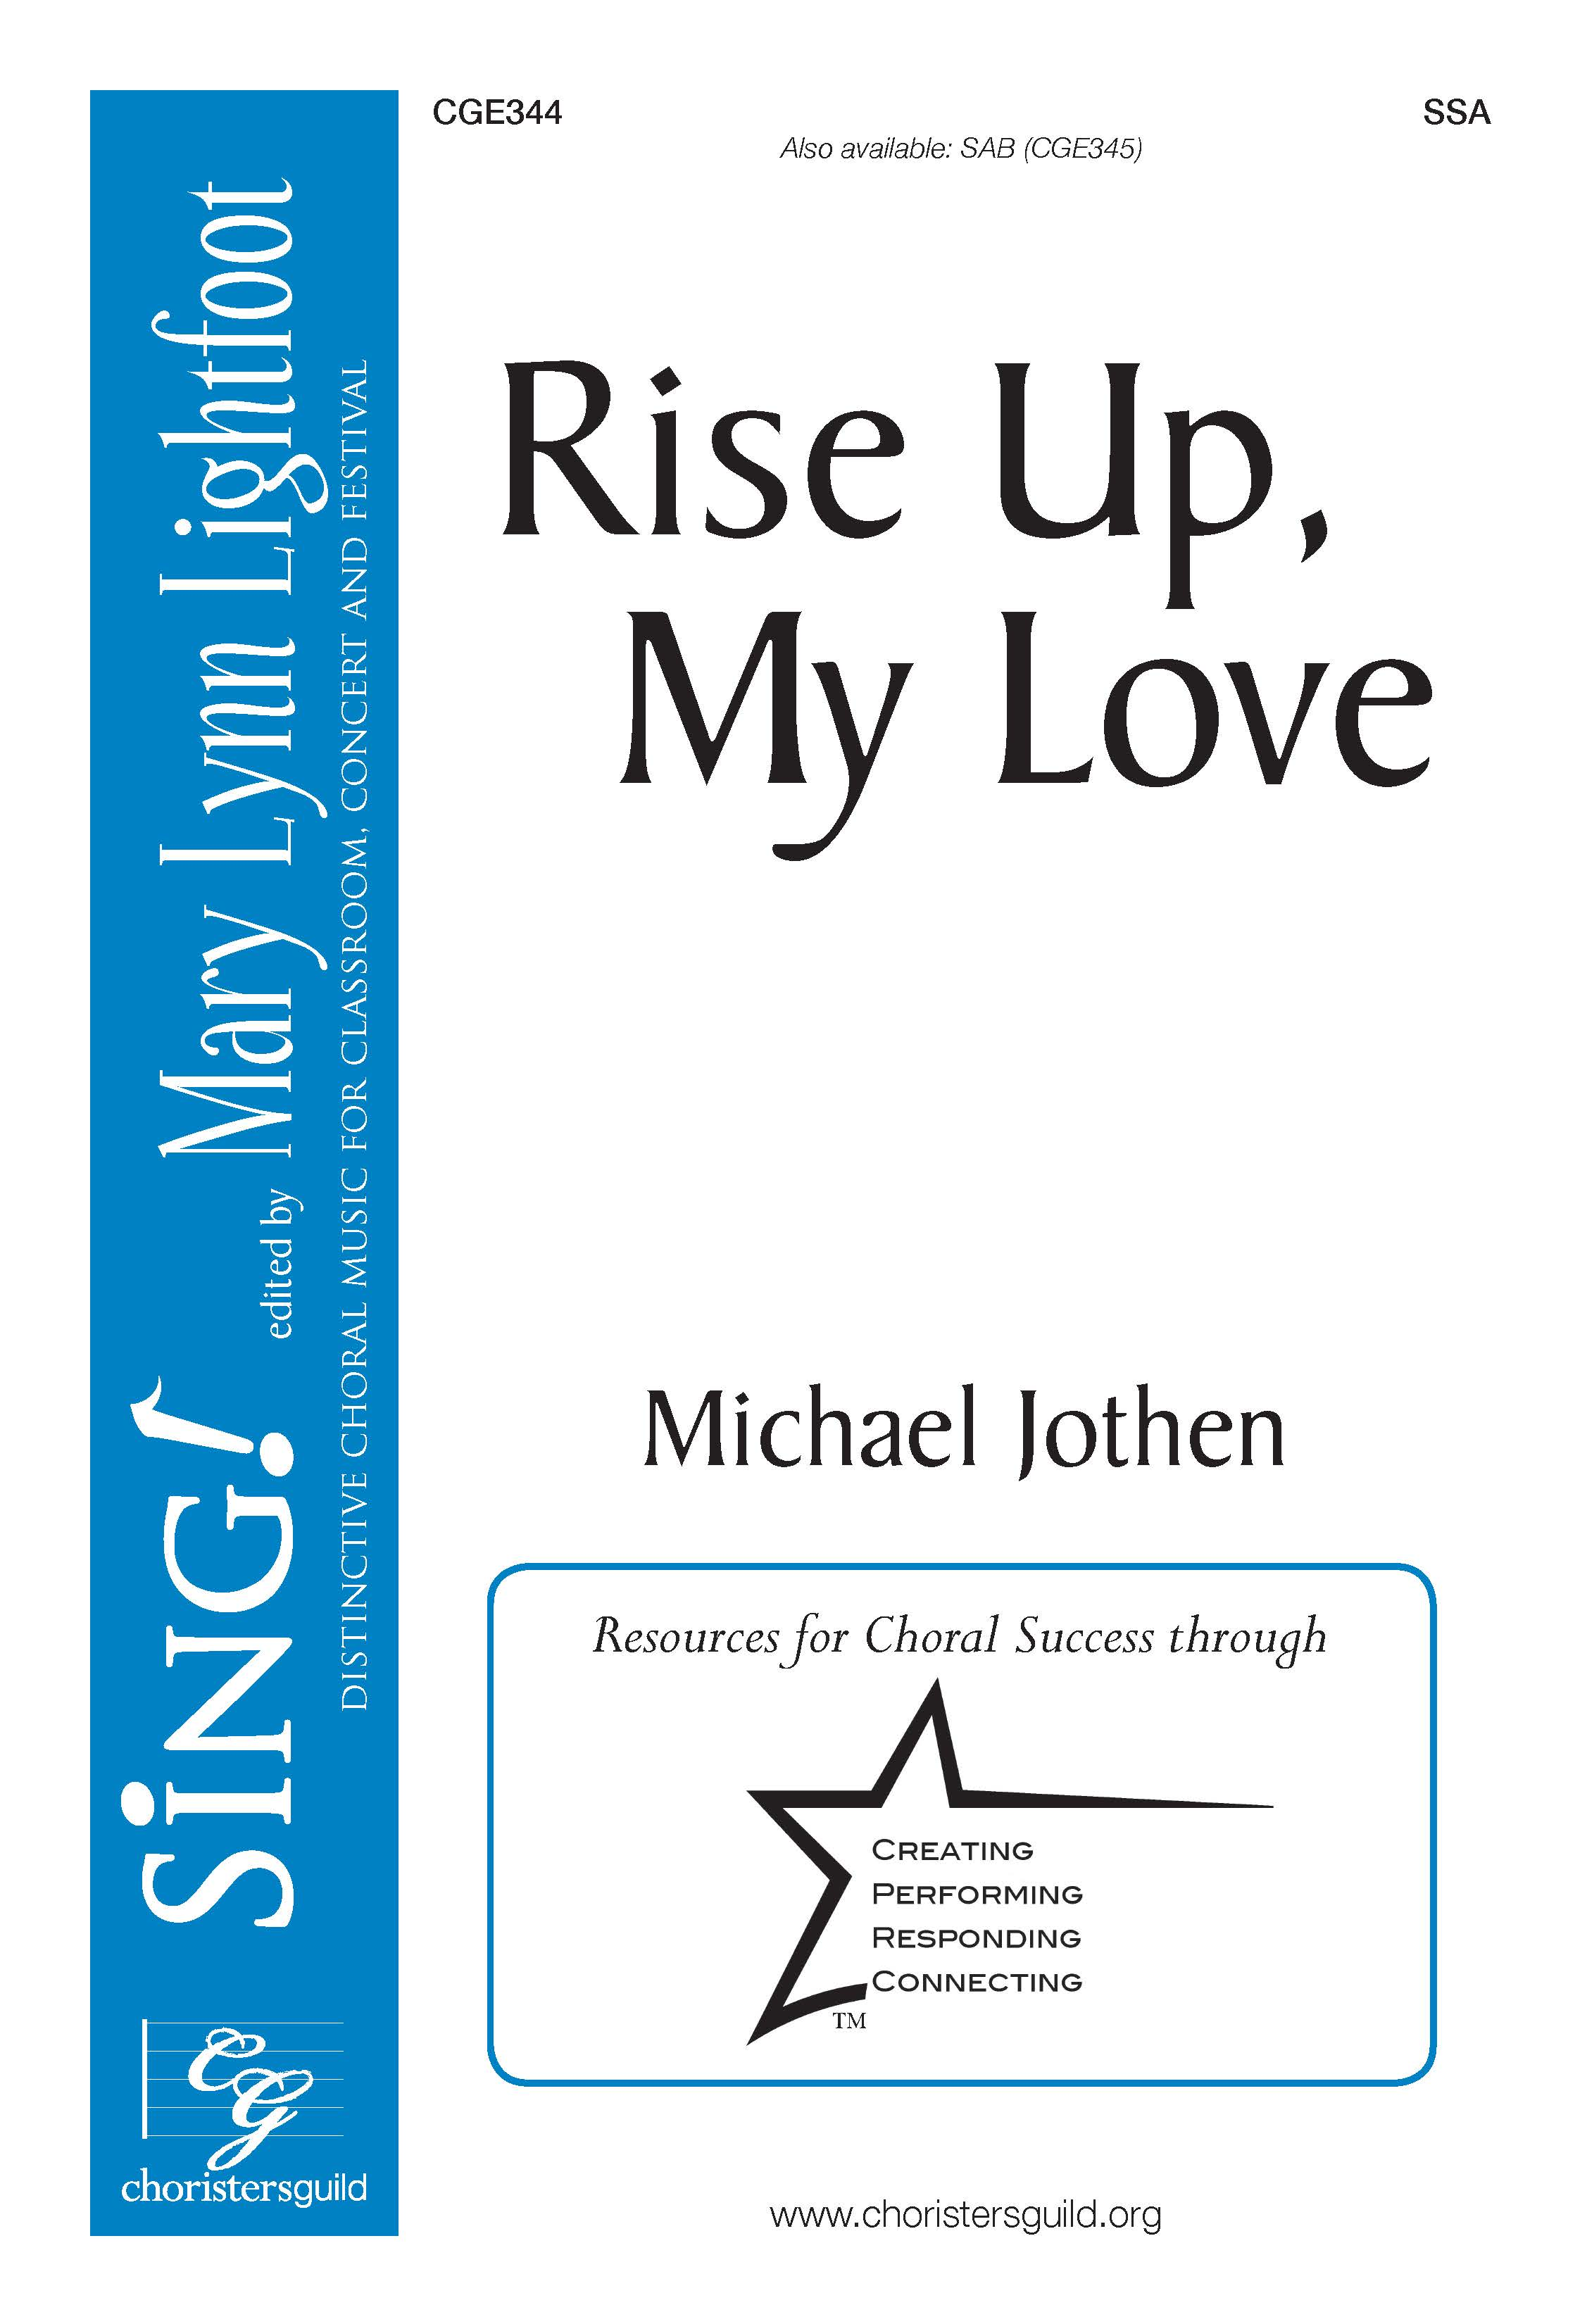 Rise Up, My Love - SSA